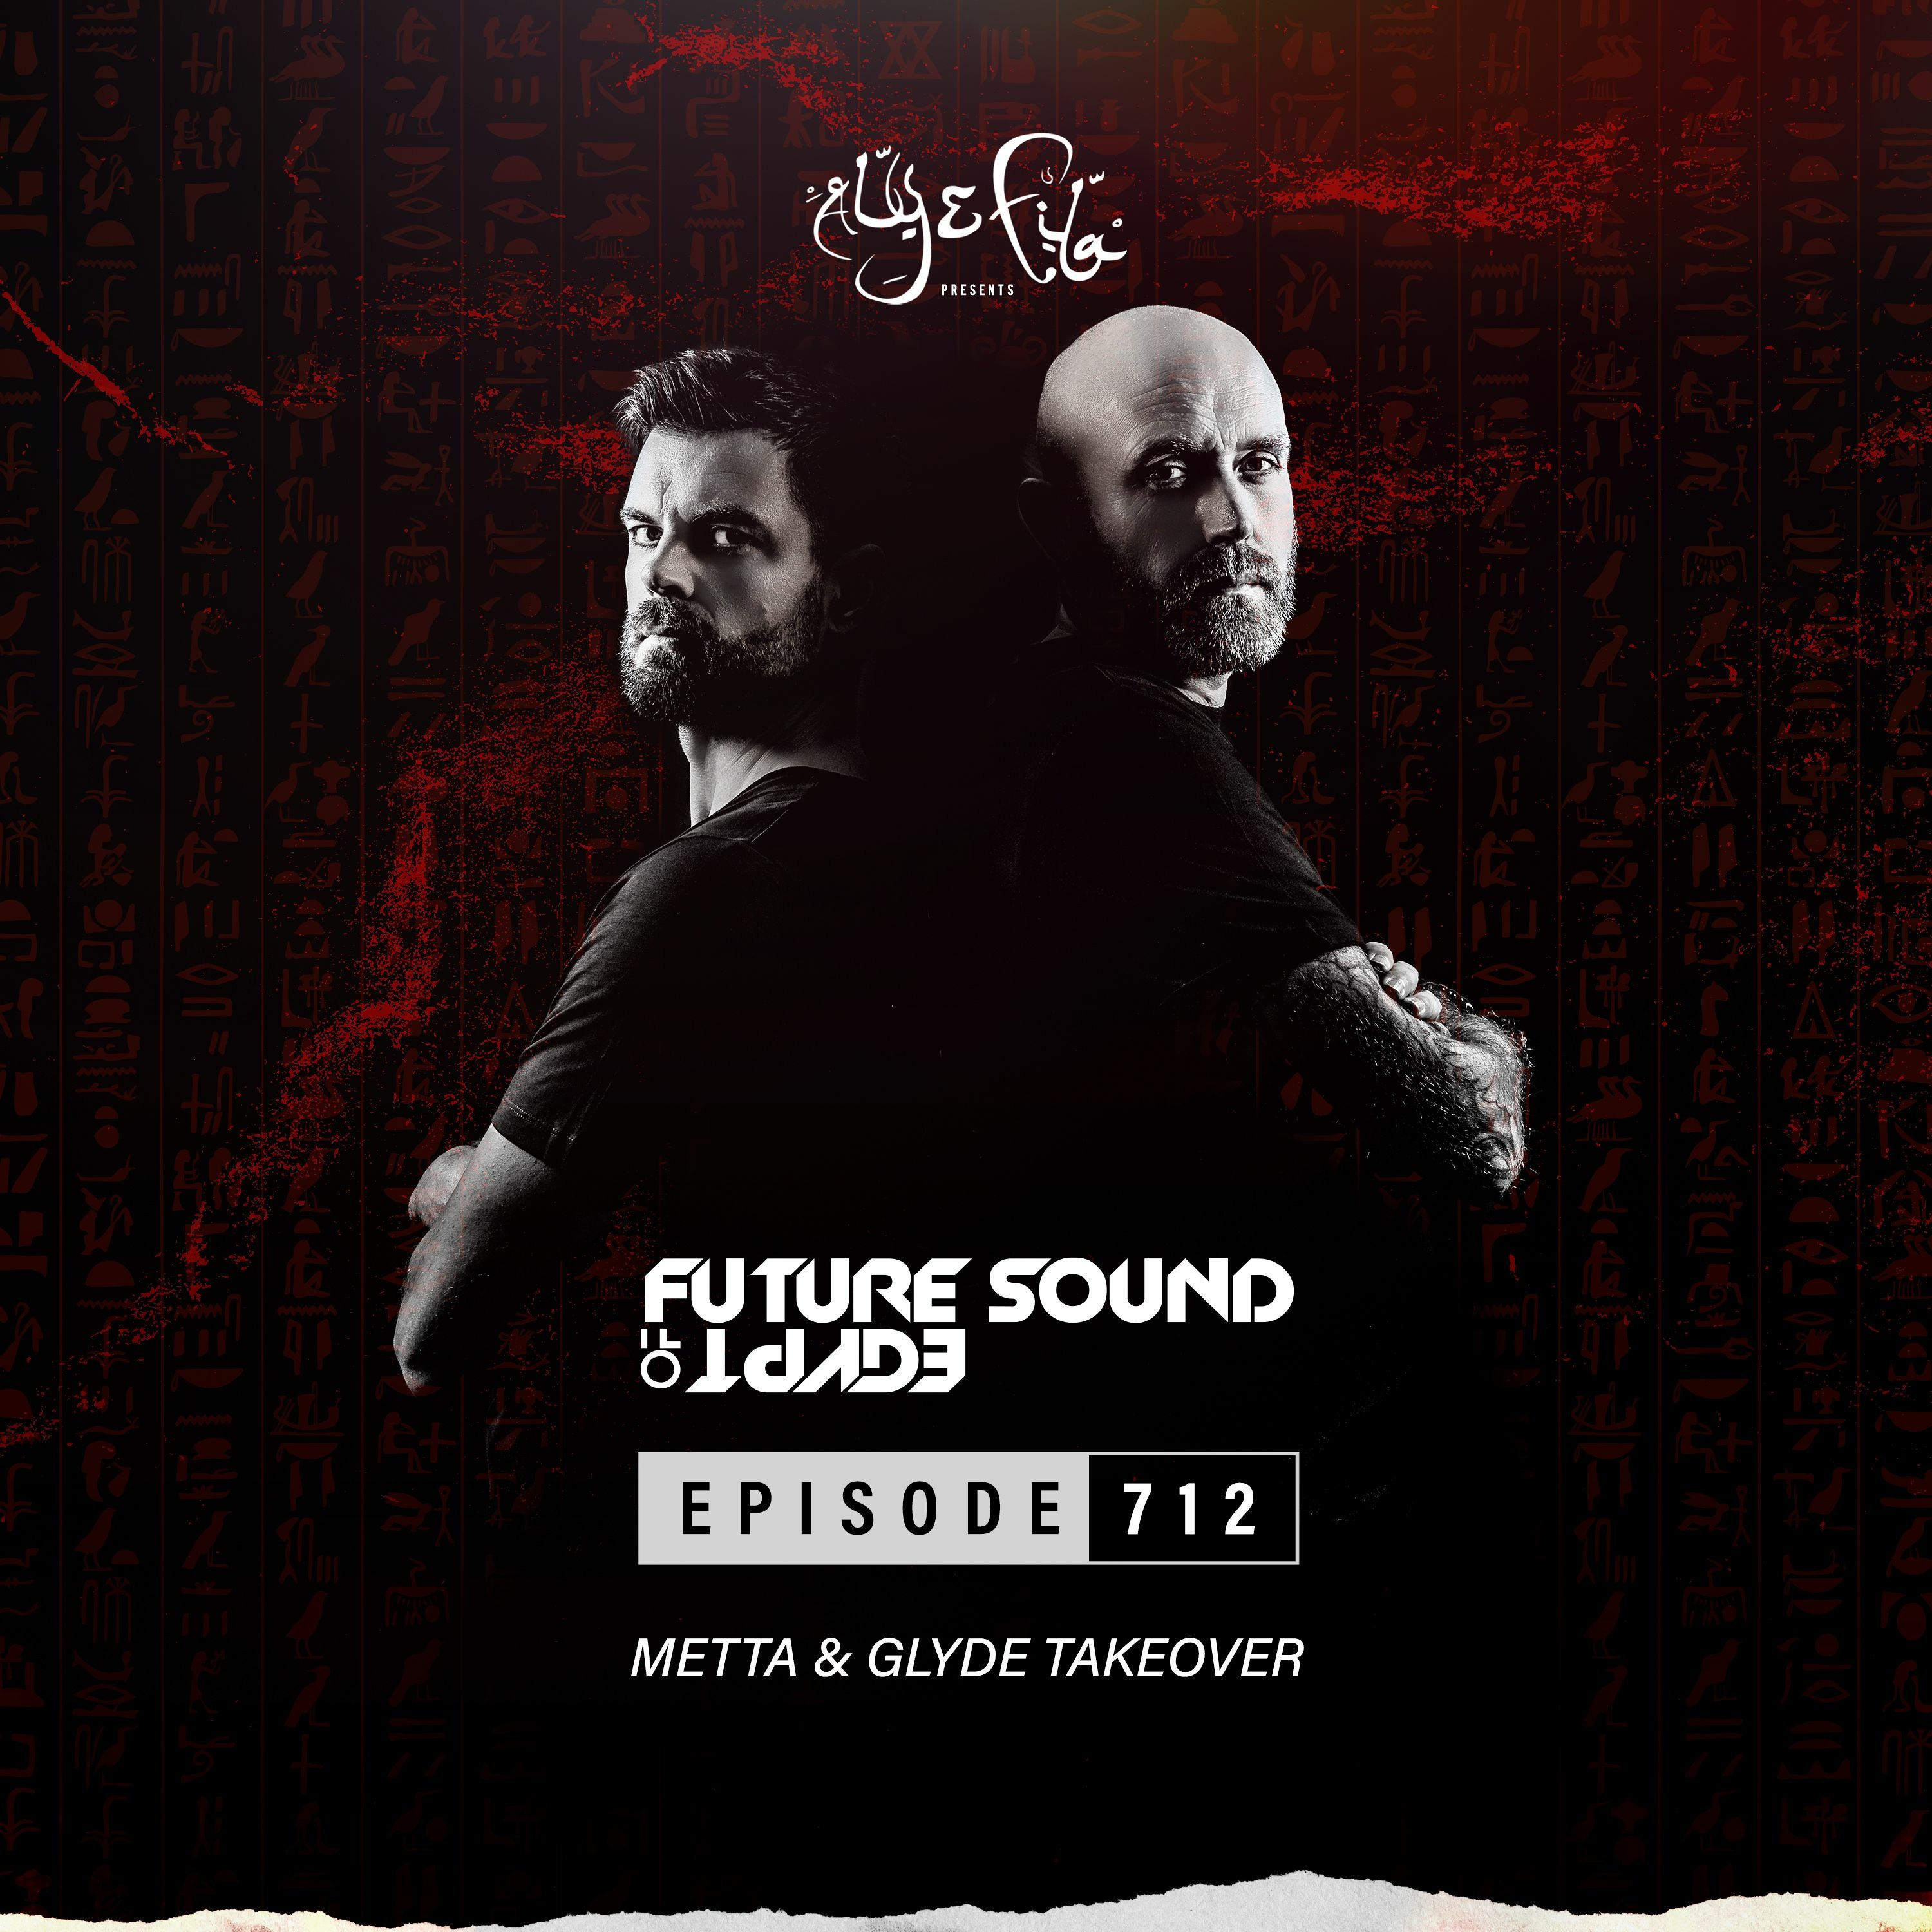 Future Sound of Egypt 712 with Aly & Fila (Metta & Glyde Takeover)